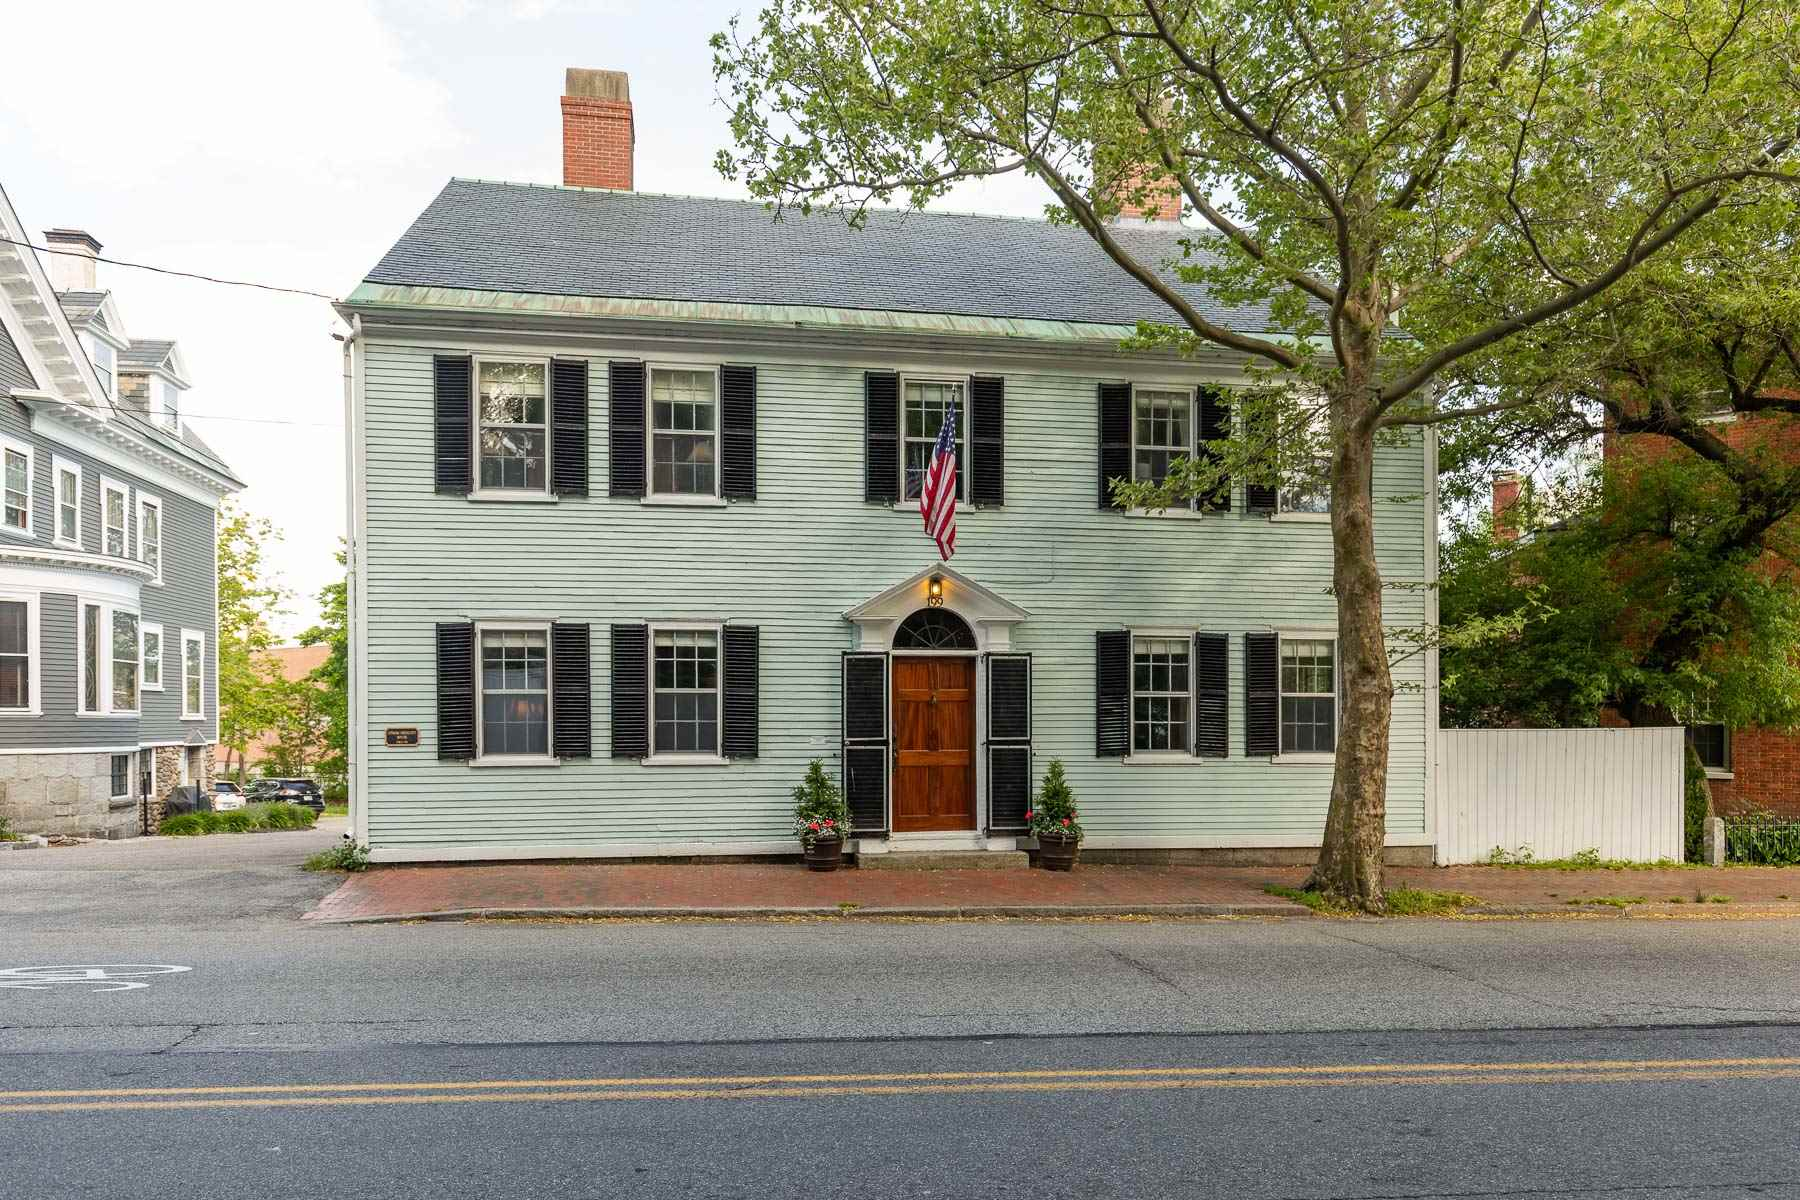 Photo of 199 Middle Street Portsmouth NH 03801